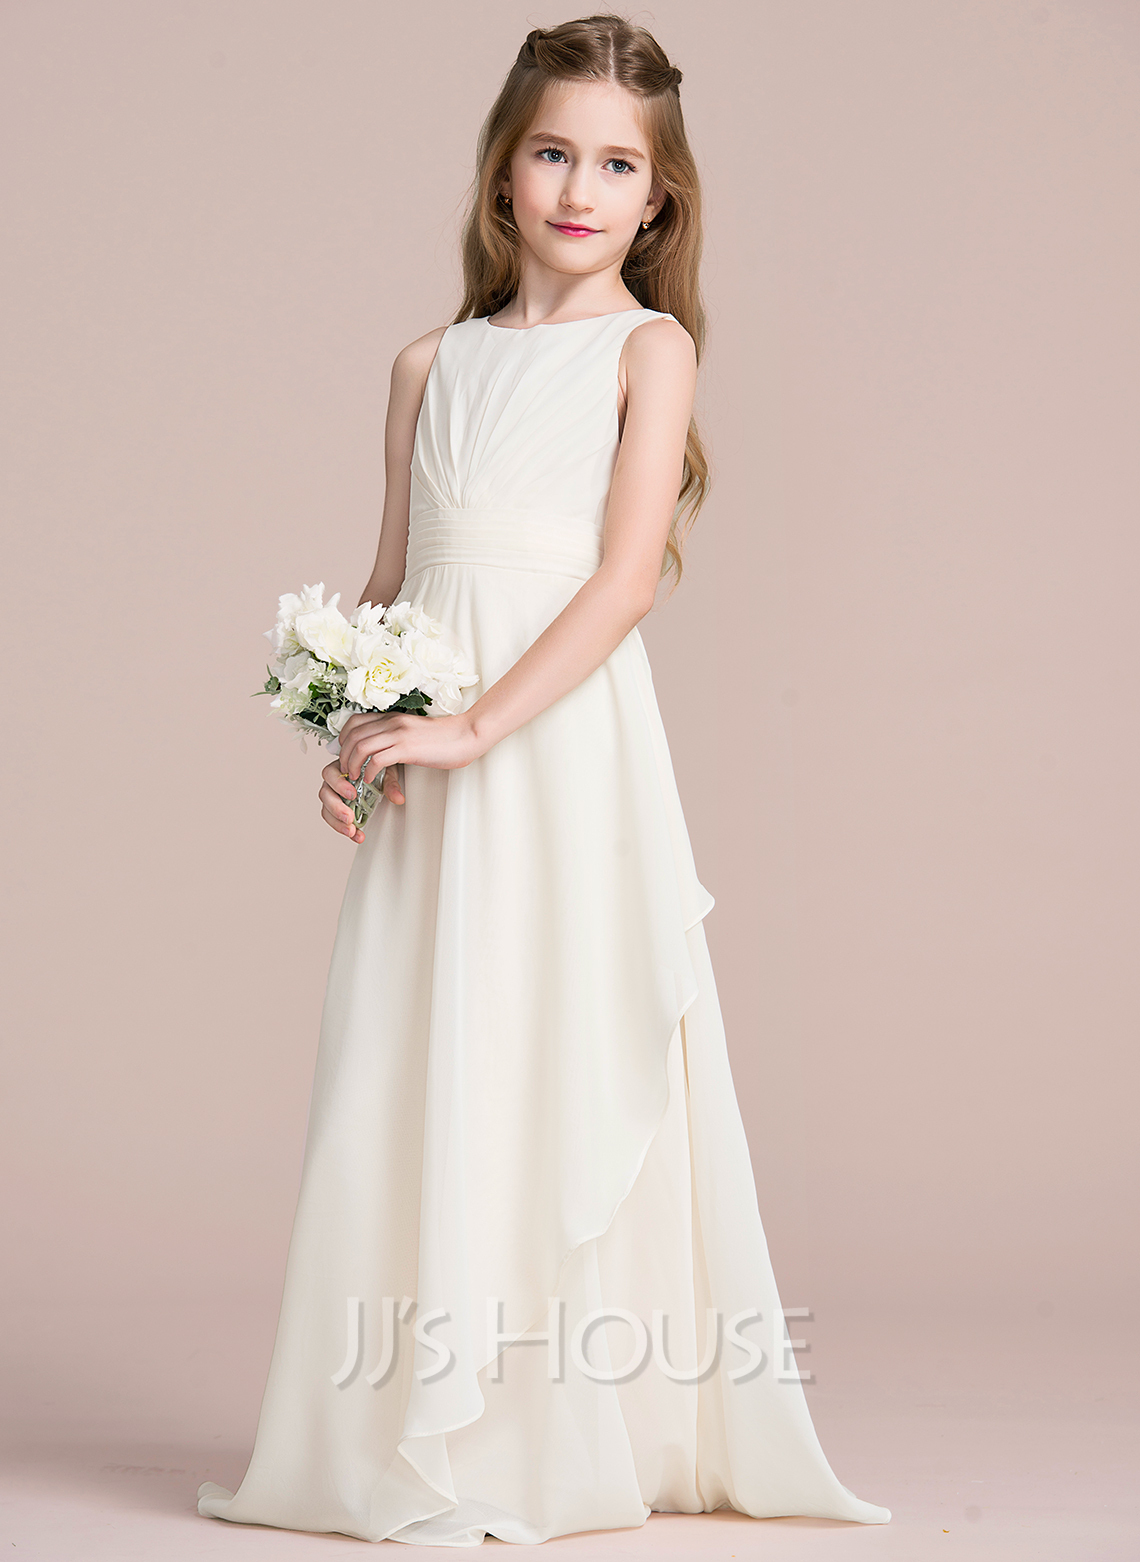 f0ed17d1c723 A-Line Scoop Neck Floor-Length Chiffon Junior Bridesmaid Dress With  Cascading Ruffles. Loading zoom